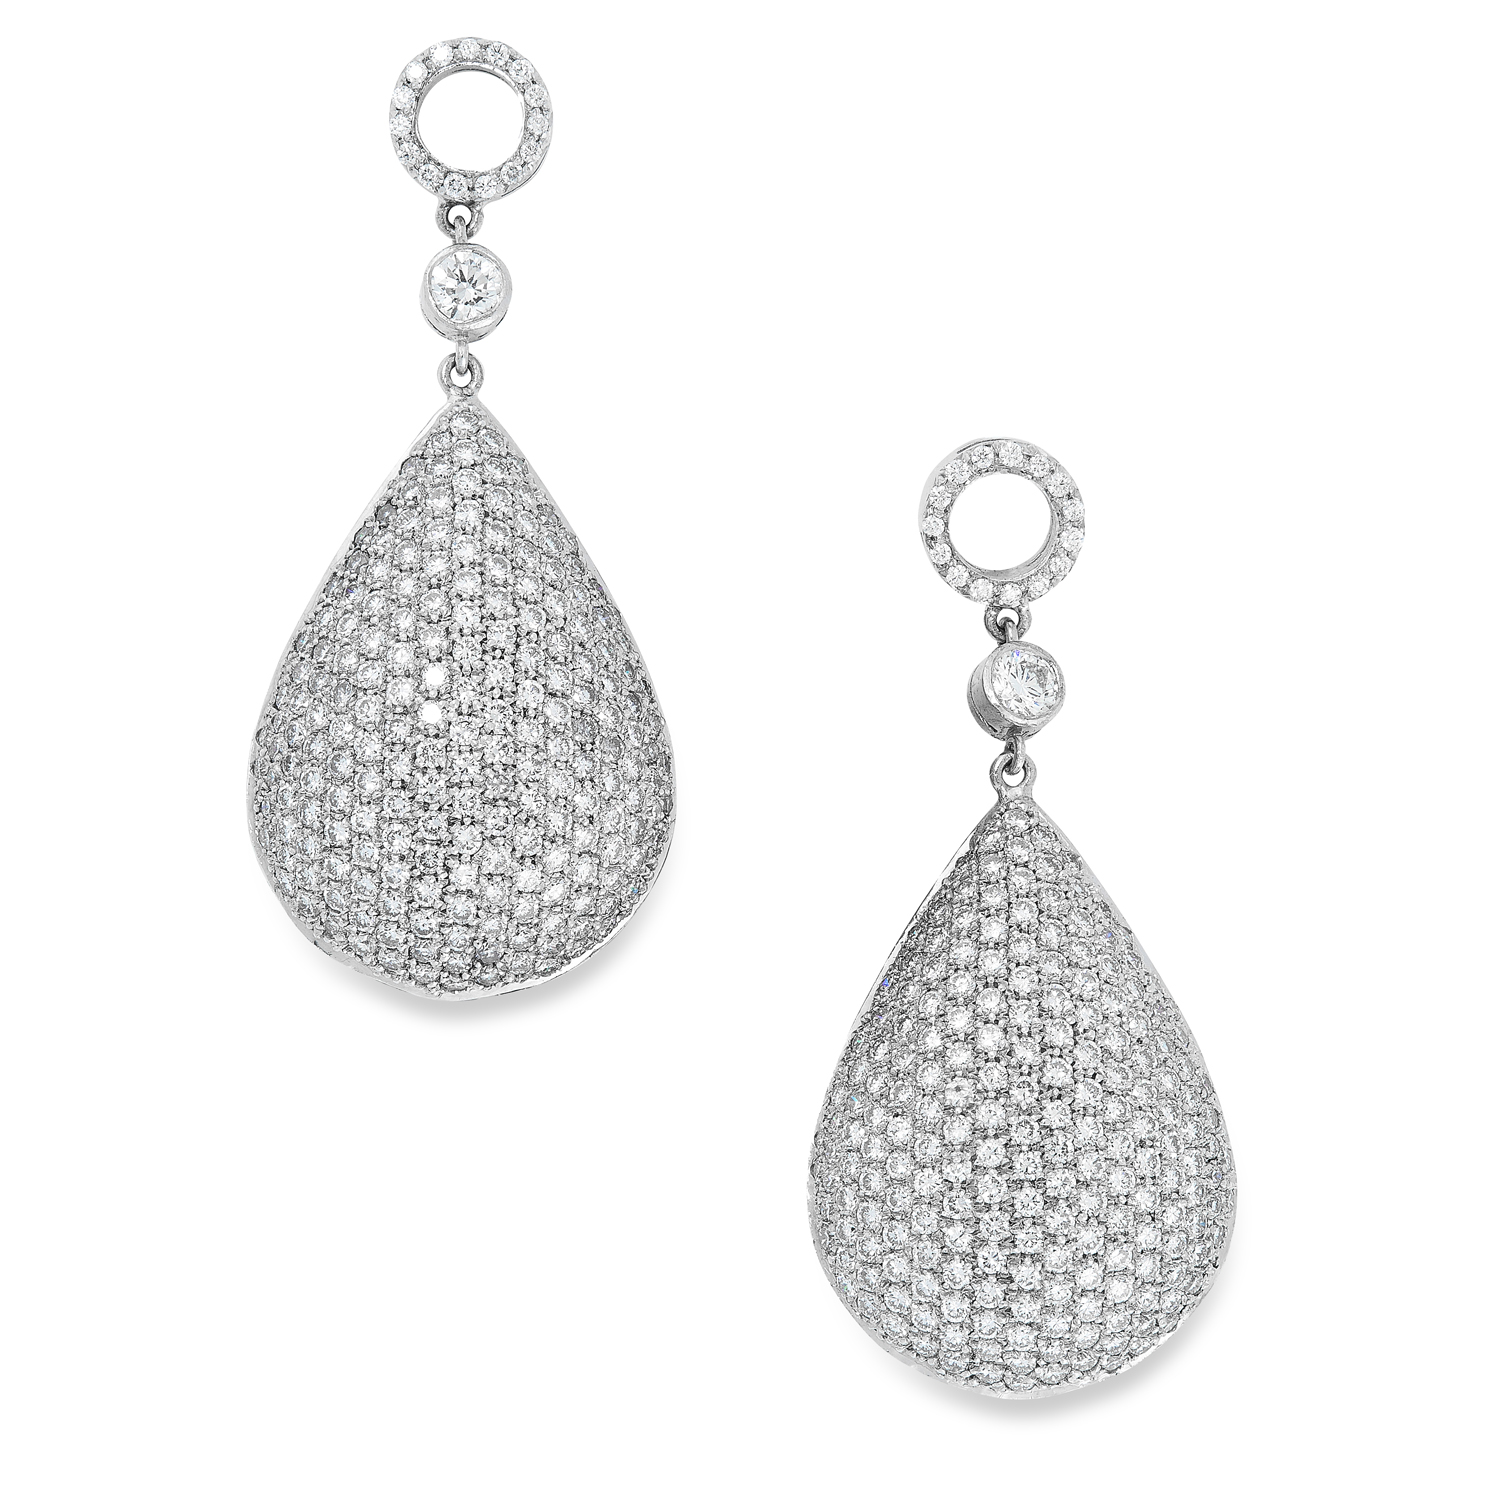 A DIAMOND PENDANT AND EARRINGS SUITE comprising a pair of earrings, pendant and chain, in teardrop - Image 3 of 4